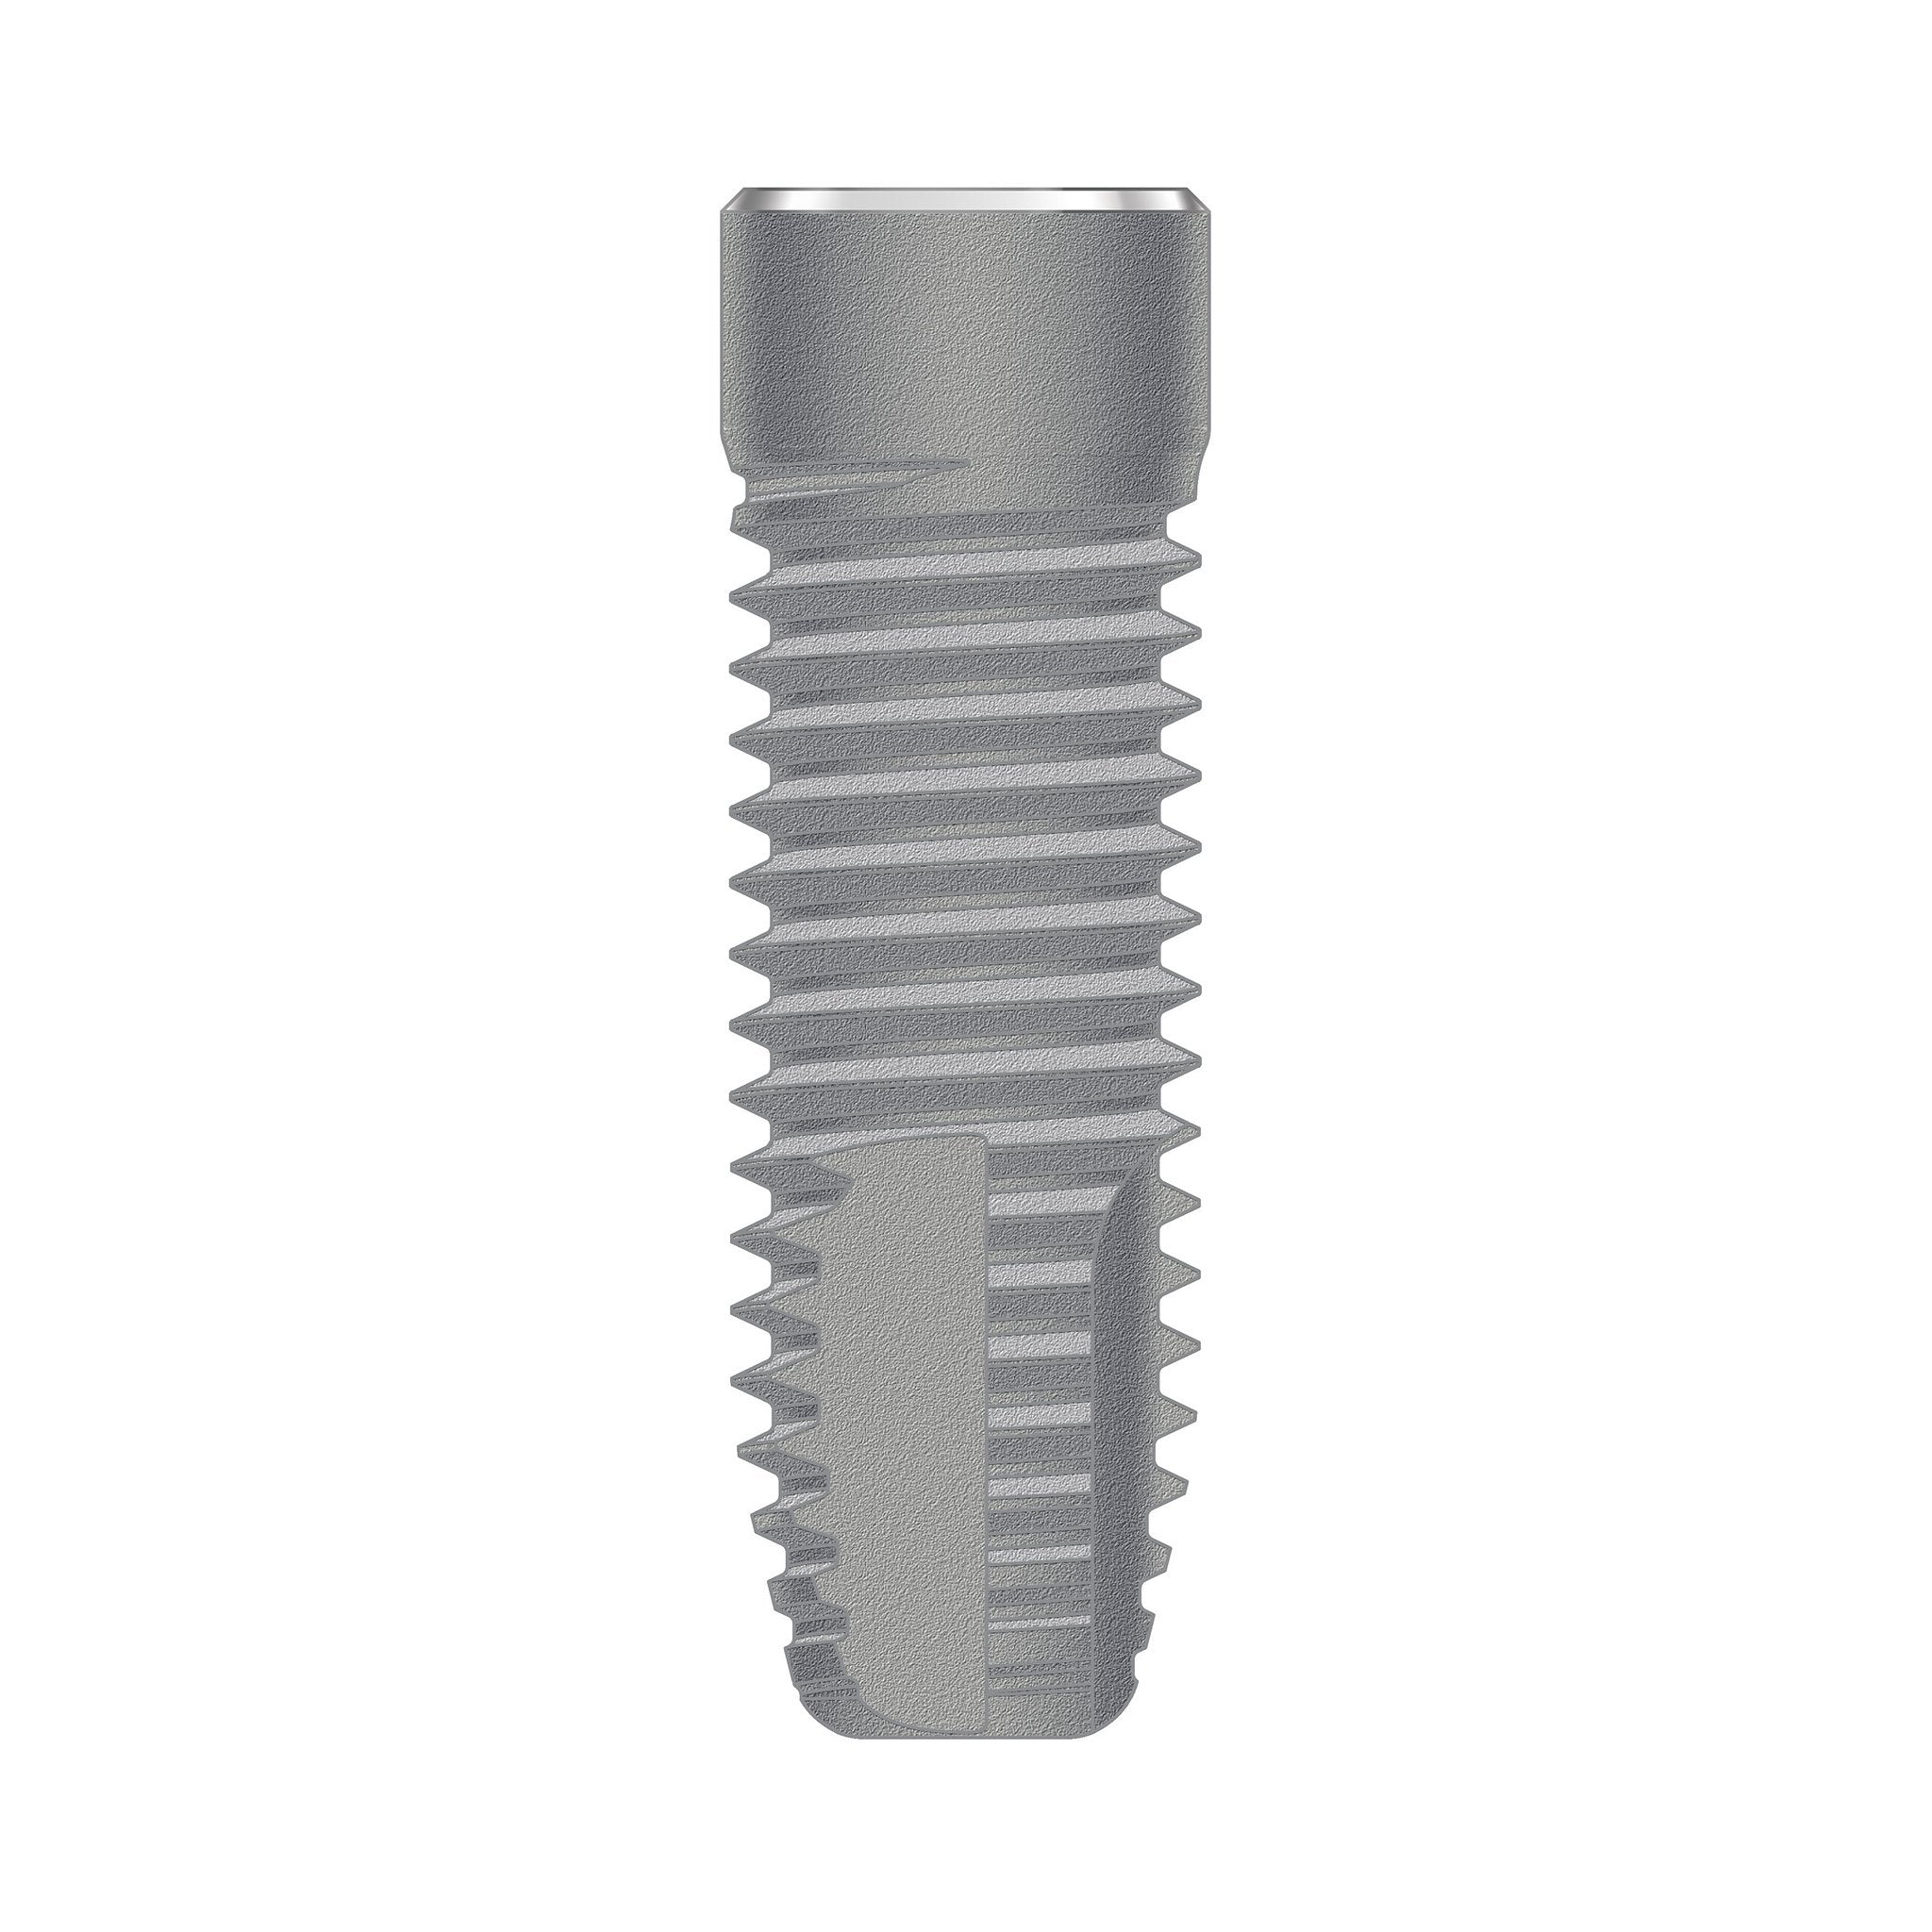 PrimaConnex® TC Straight Implant RD Ø 4.0 x 15mm | K3